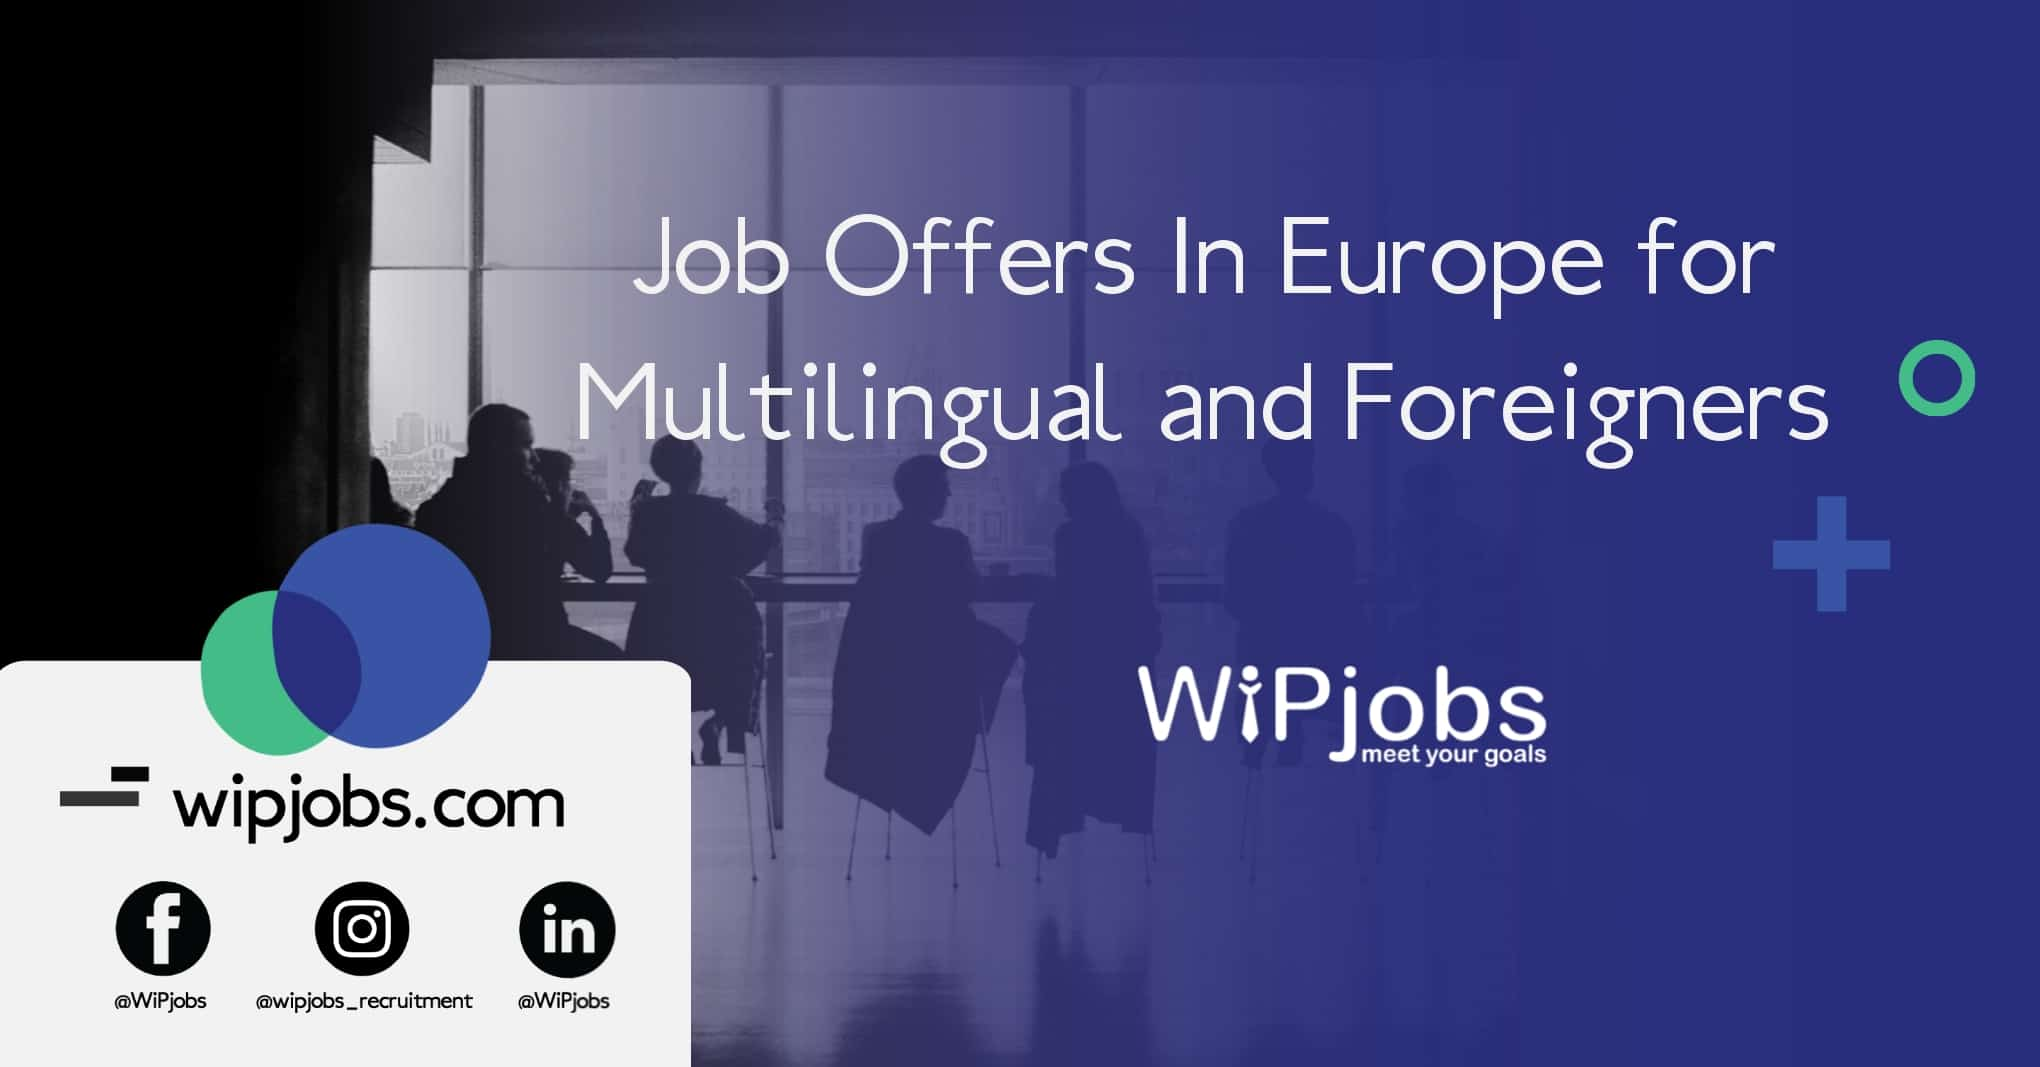 Job Offers In Europe For Multilingual And Foreigners